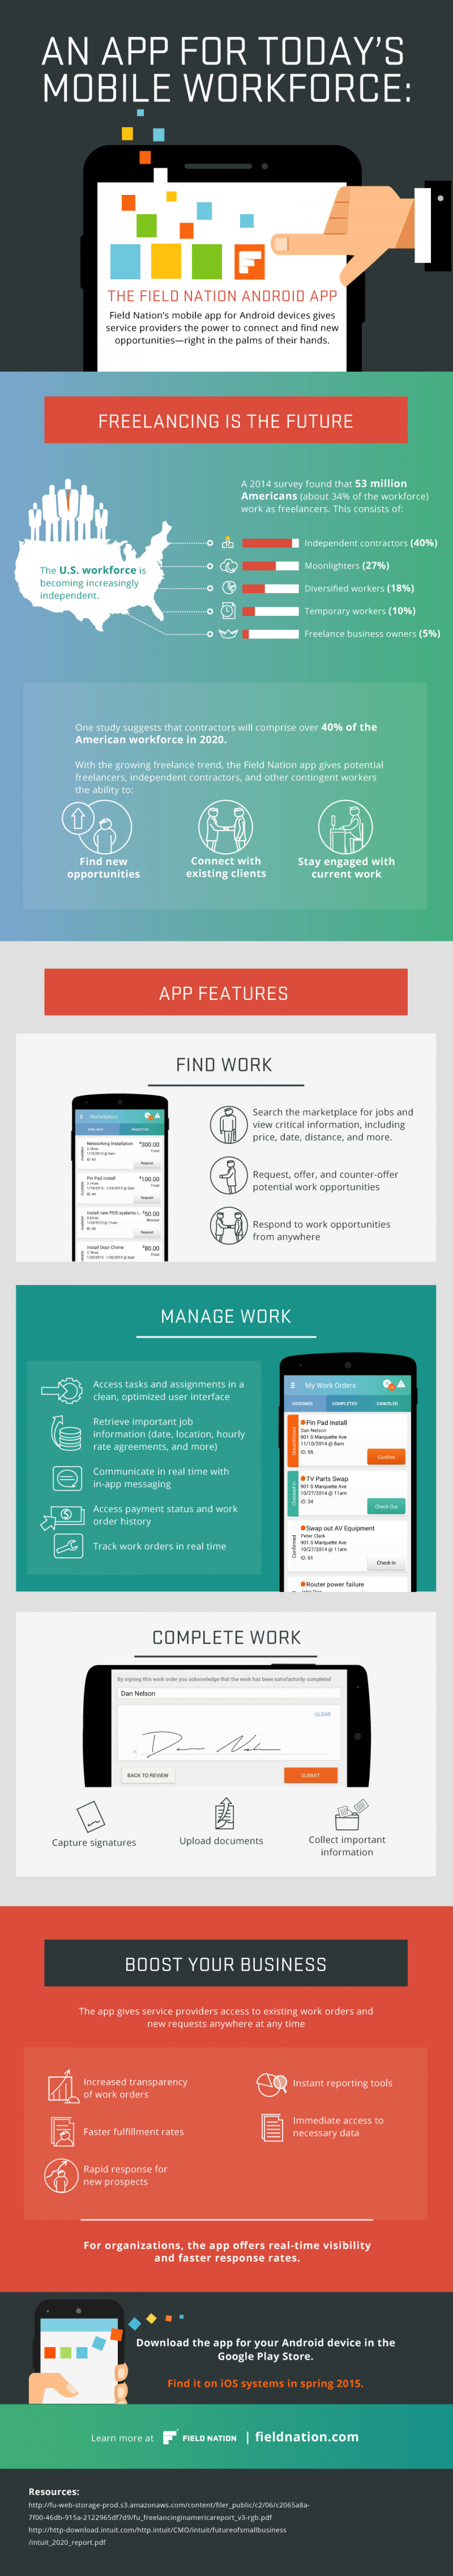 An App For Today's Mobile Workforce: The Field Nation Android App Infographic